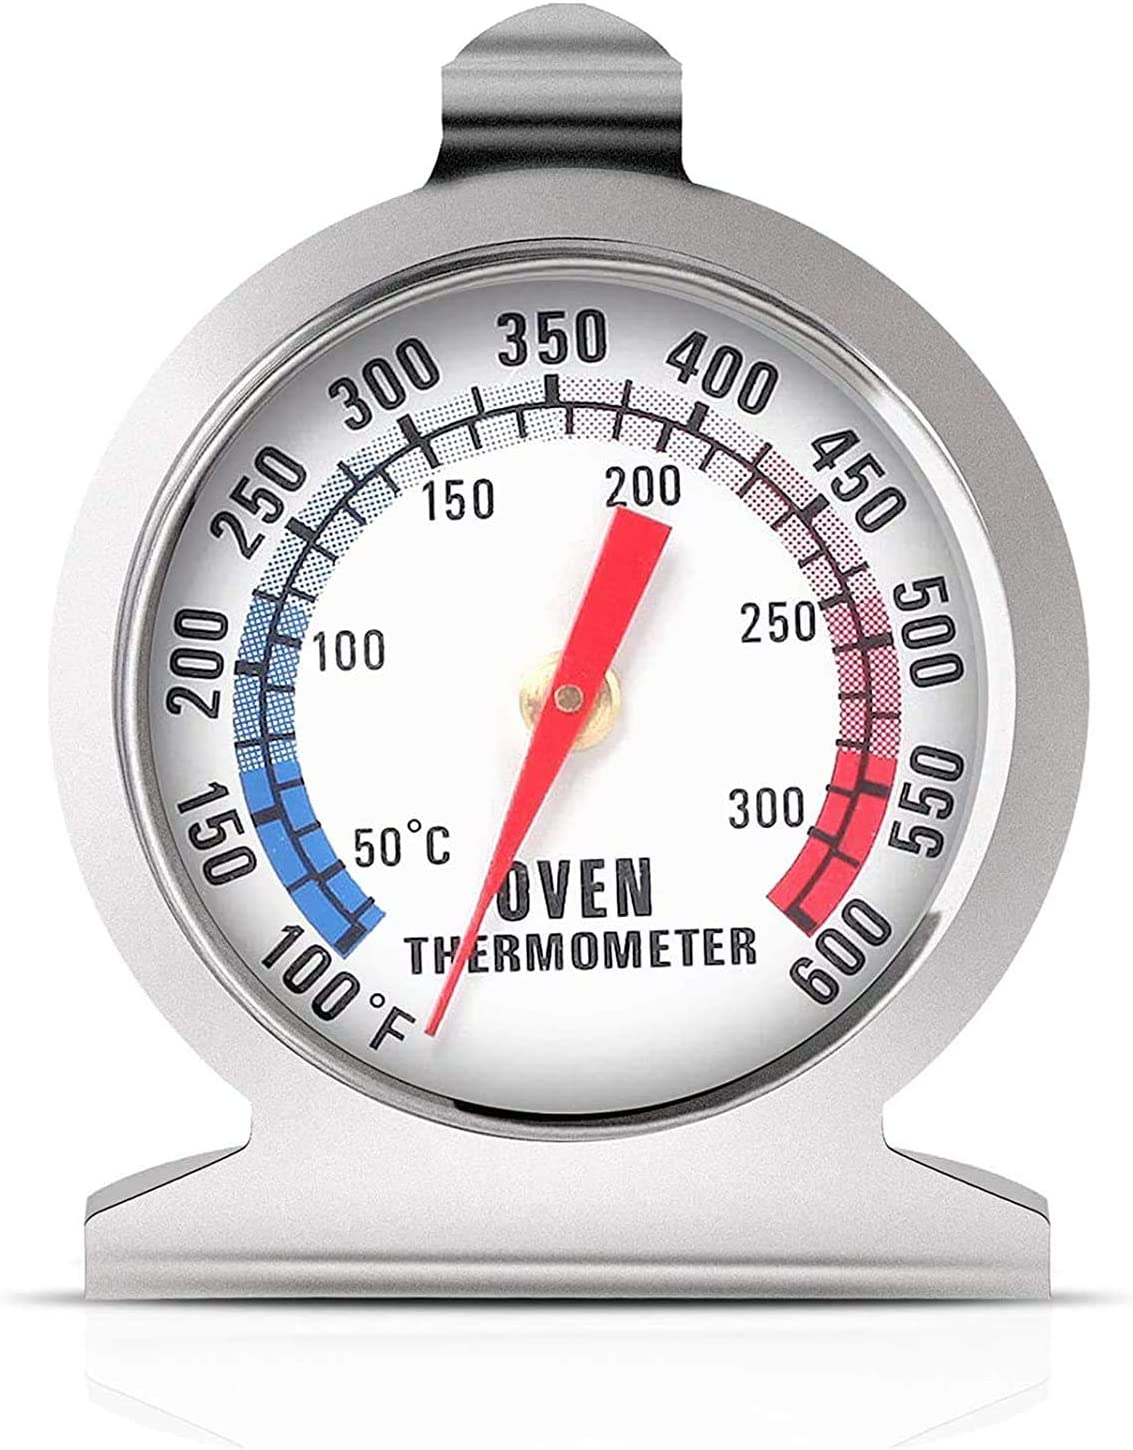 Oven Thermometers 50-300°C/100-600°F, Oven Grill Fry Chef Smoker Thermometer Instant Read Stainless Steel Thermometer Kitchen Cooking Thermometer for BBQ Baking